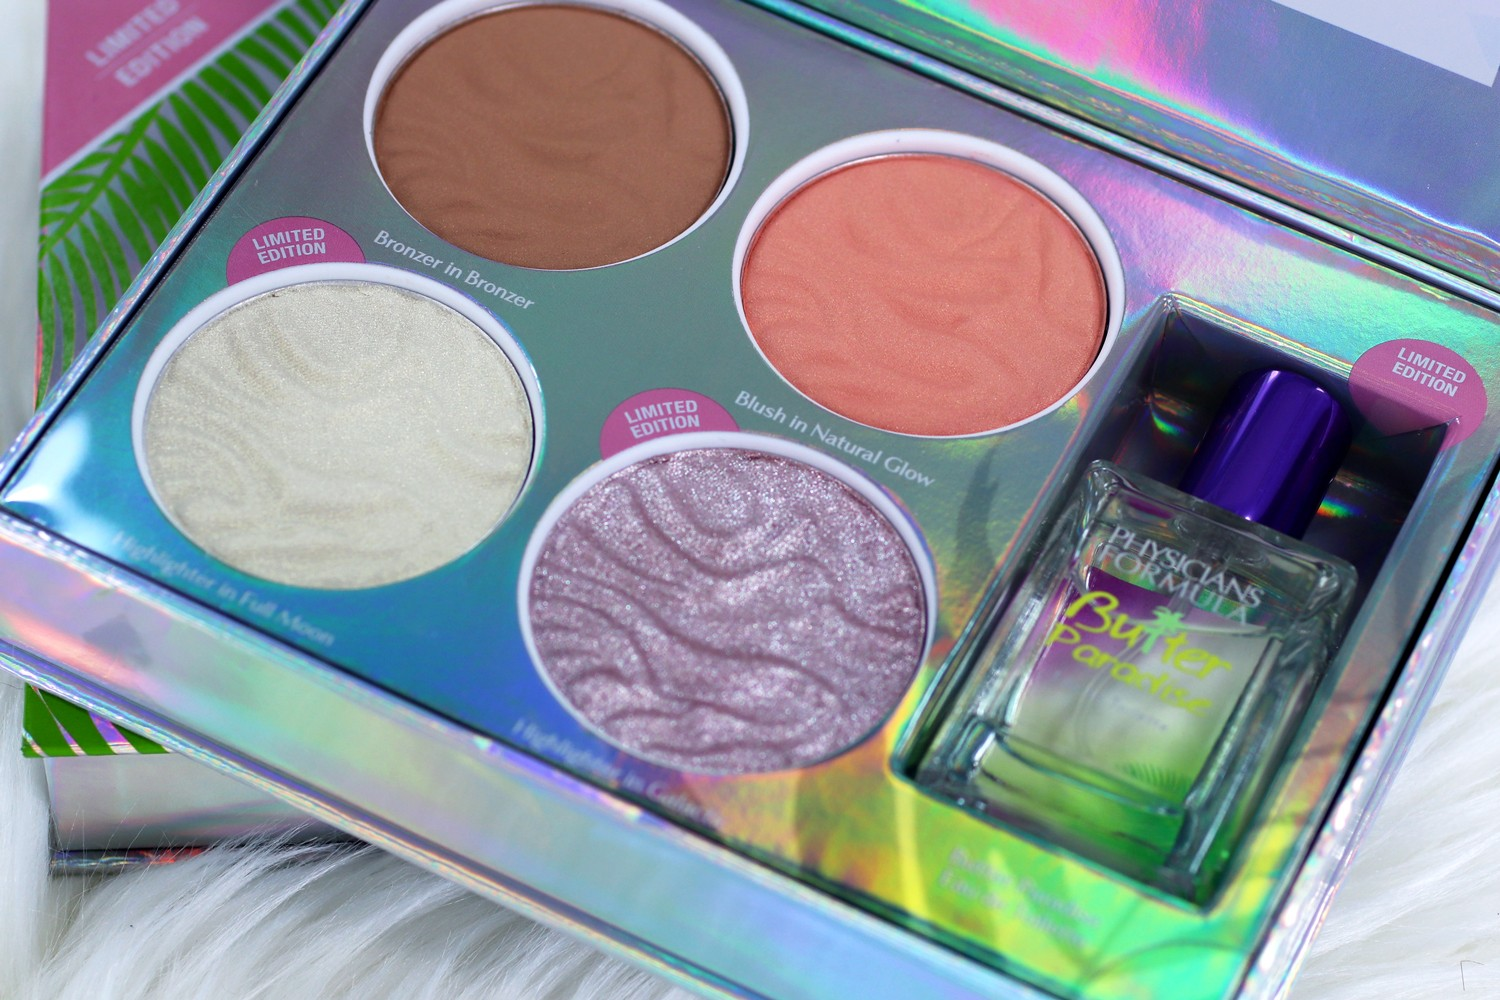 Physicians Formula Butter Collection Palette Light Medium - Review and Swatches by Popular Los Angeles Cruelty Free Beauty Blogger, My Beauty Bunny